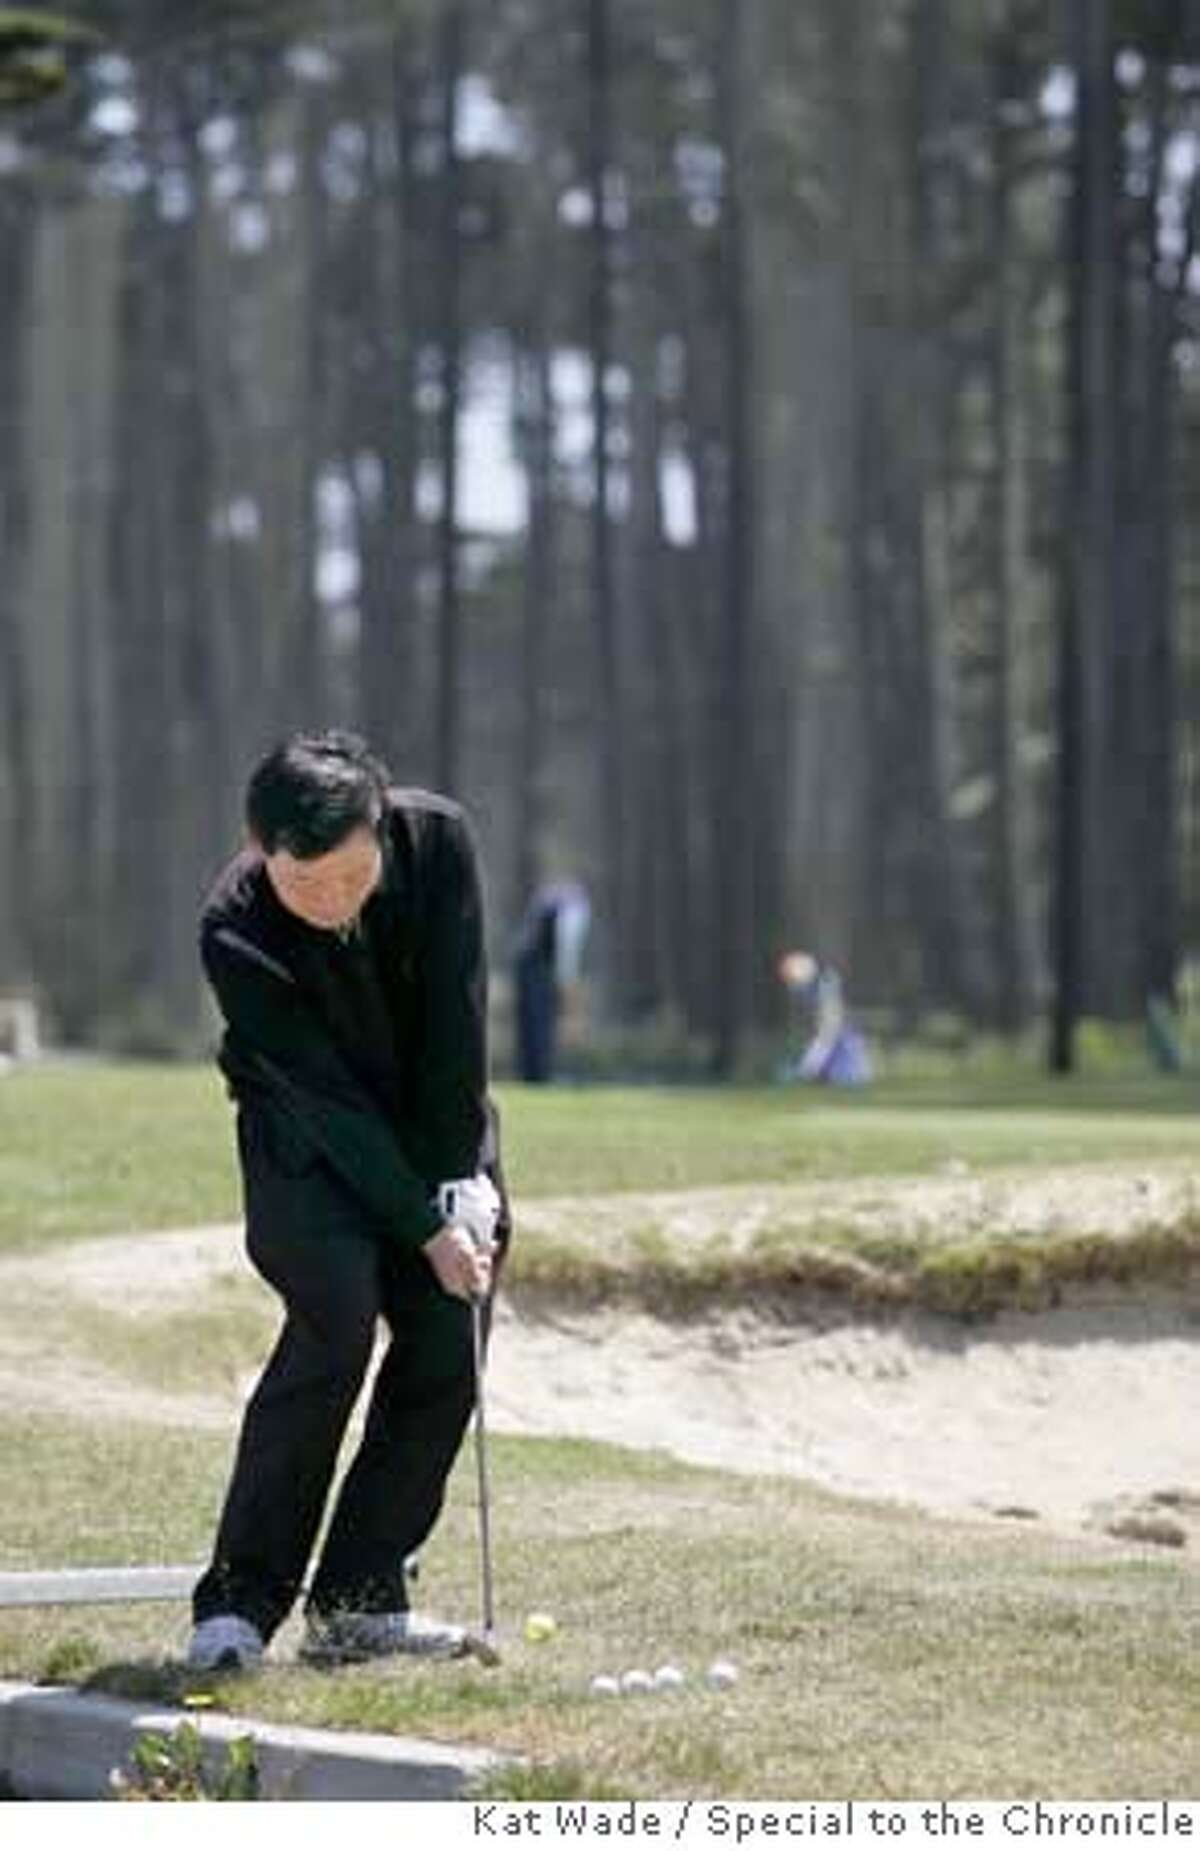 ###Live Caption:Visitor Tae Hui Chong from Korea practices getting over a sand trap18th hole at the Harding Park Golf Course in San Francisco, Calif. on Monday, May 5, 2008. Photo by Kat Wade###Caption History:Visitor Tae Hui Chong from Korea practices getting over a sand trap18th hole at the Harding Park Golf Course in San Francisco, Calif. on Monday, May 5, 2008. Photo by Kat Wade###Notes:###Special Instructions:Mandatory Credit for photographer /No Sales - mags out